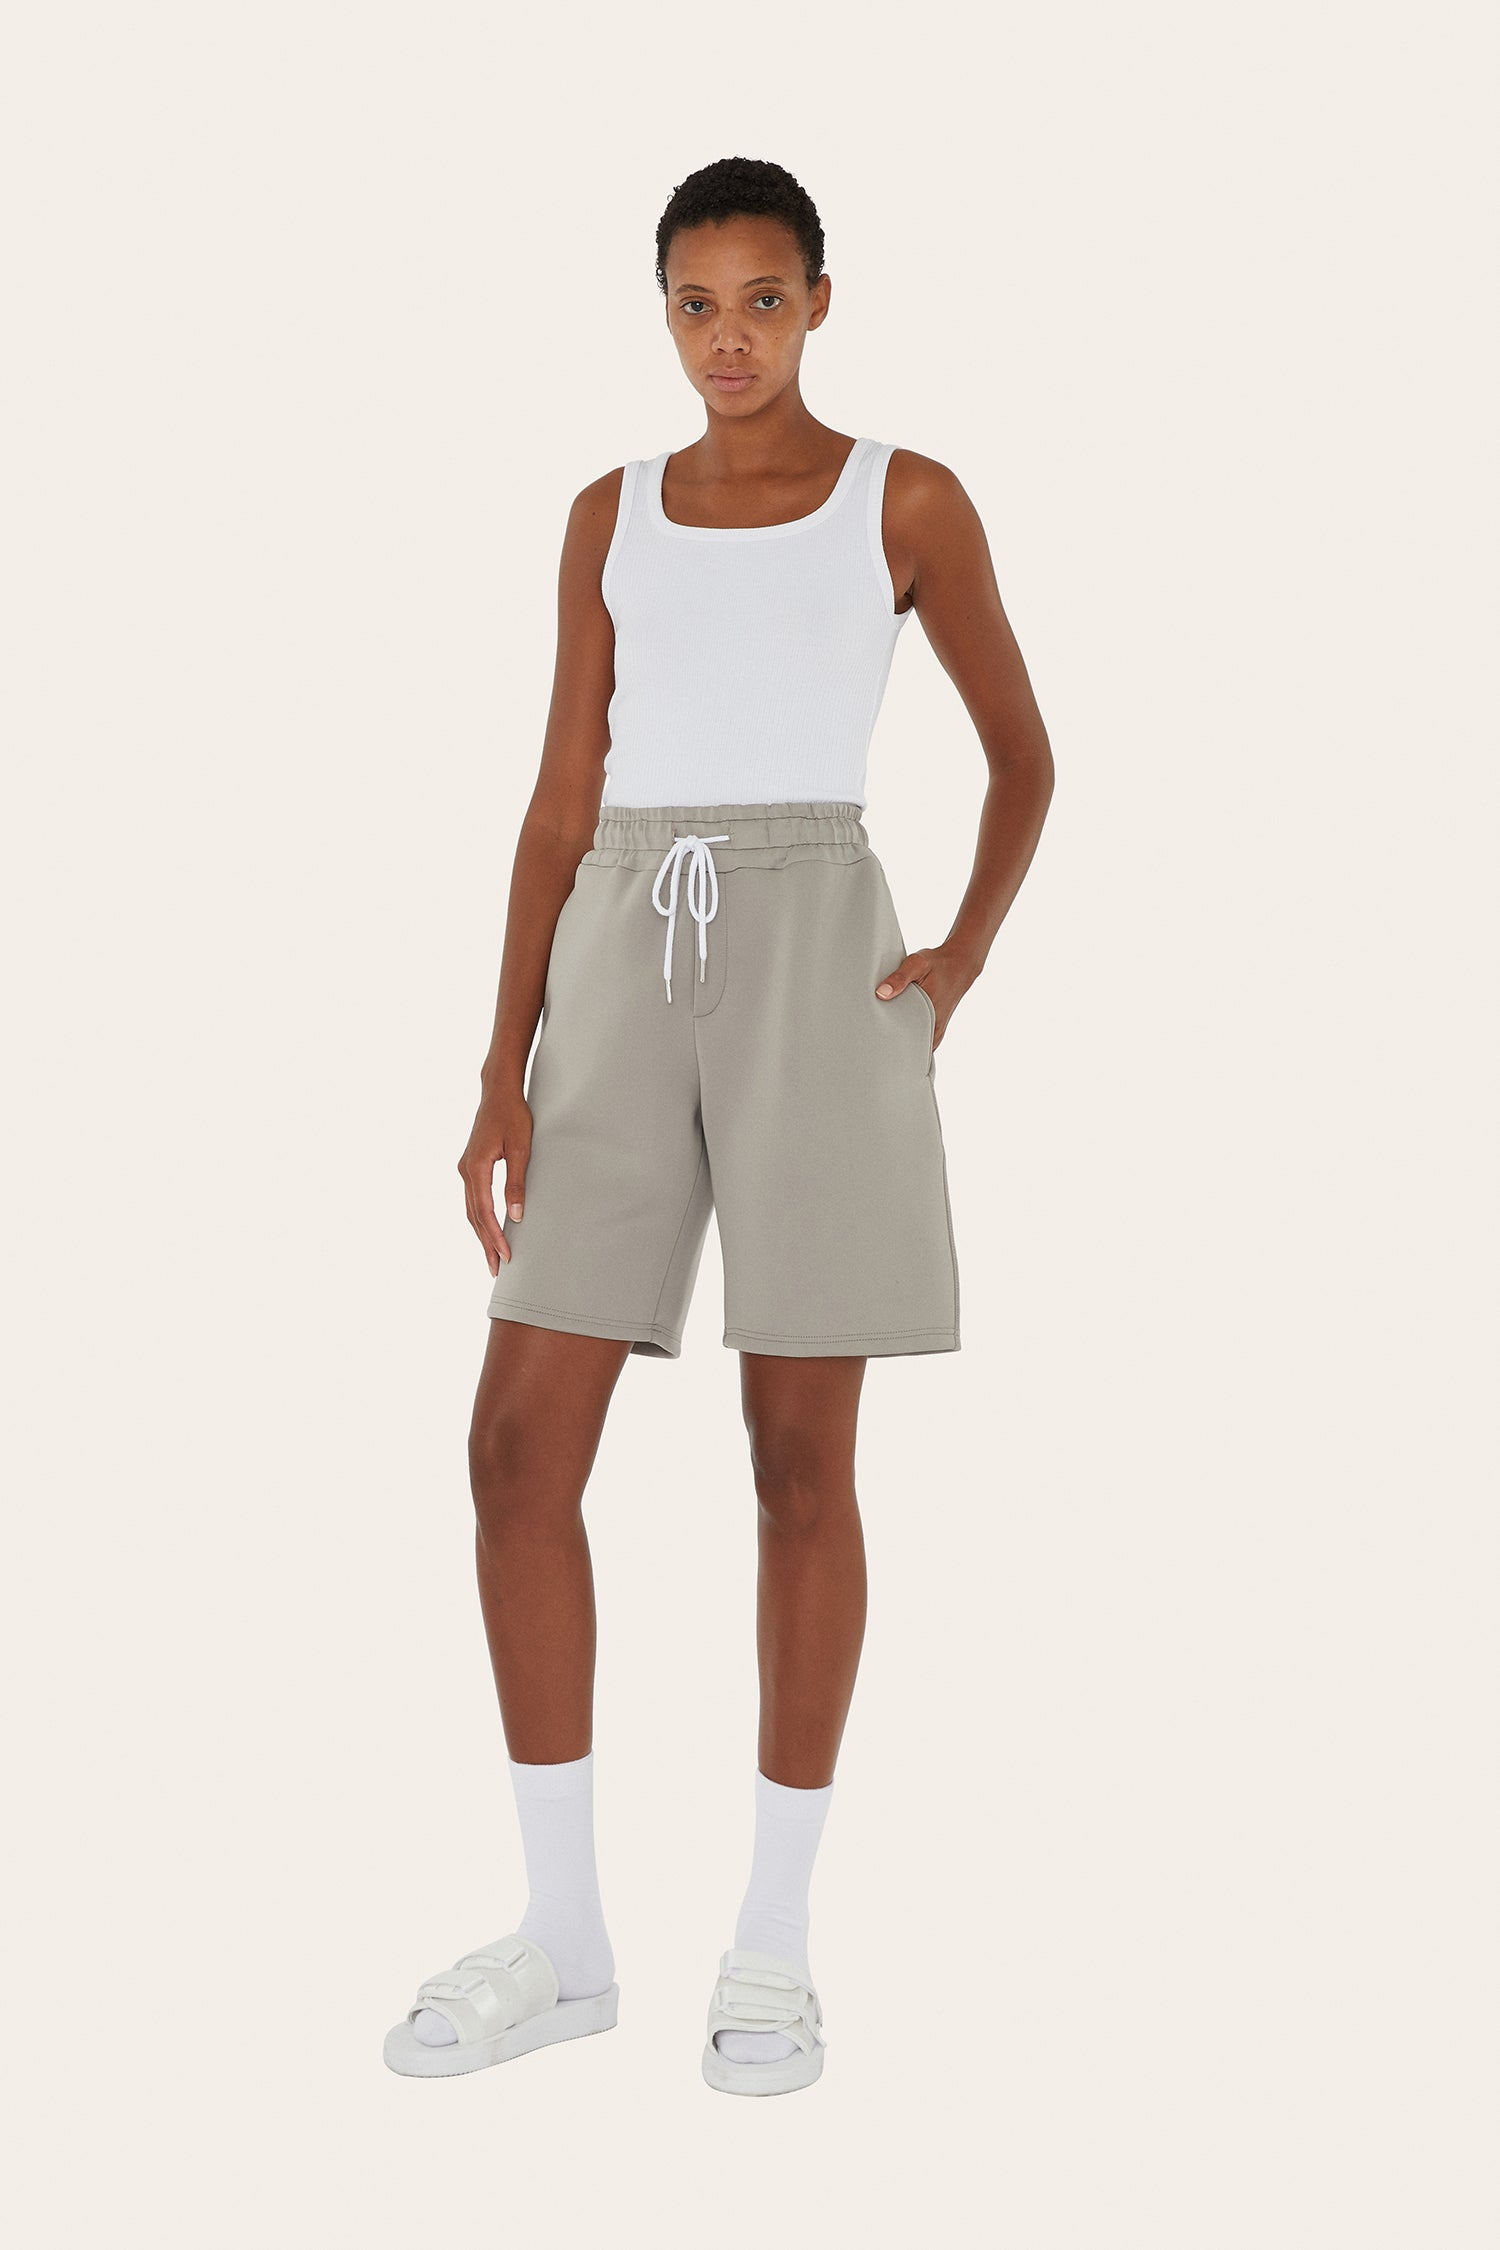 Seventh product - Boxy Shorts in Sage